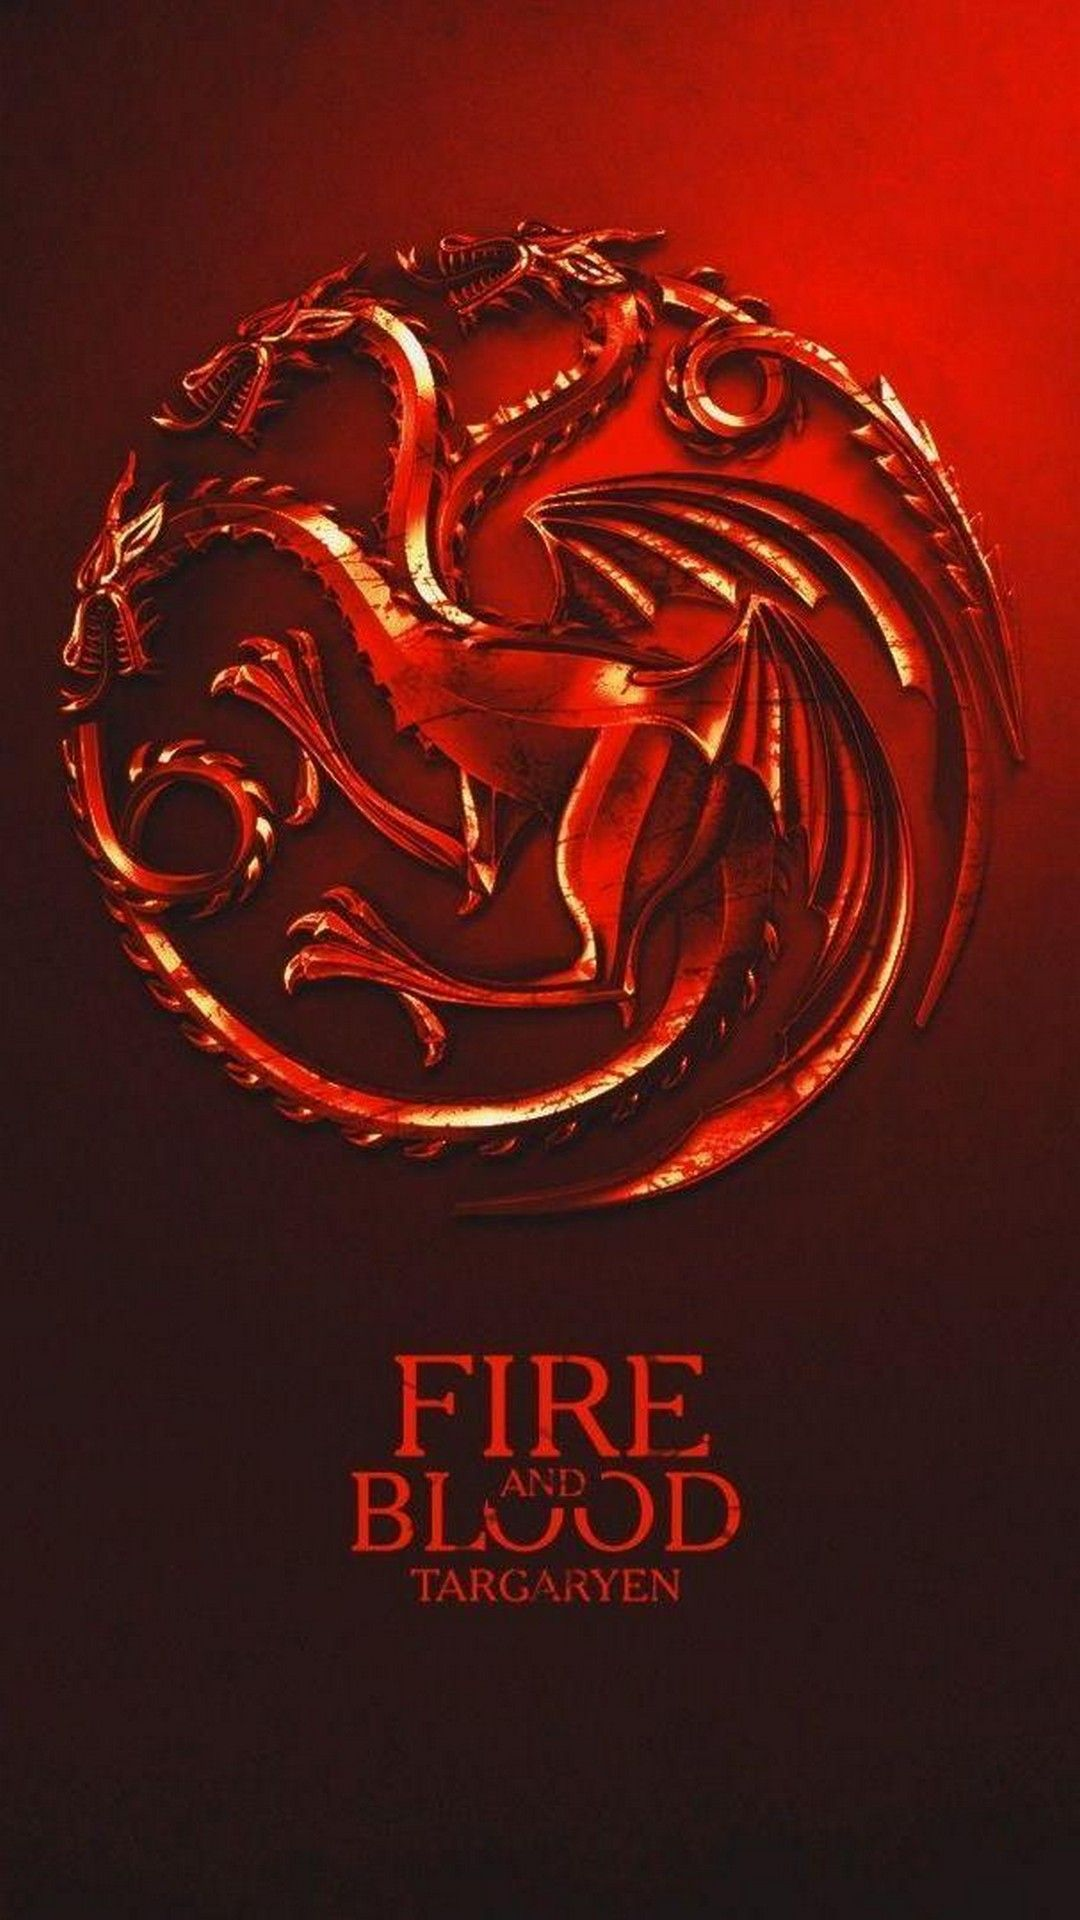 Iphone Wallpaper Game Of Thrones Tattoo Game Of Thrones Artwork Drogon Game Of Thrones